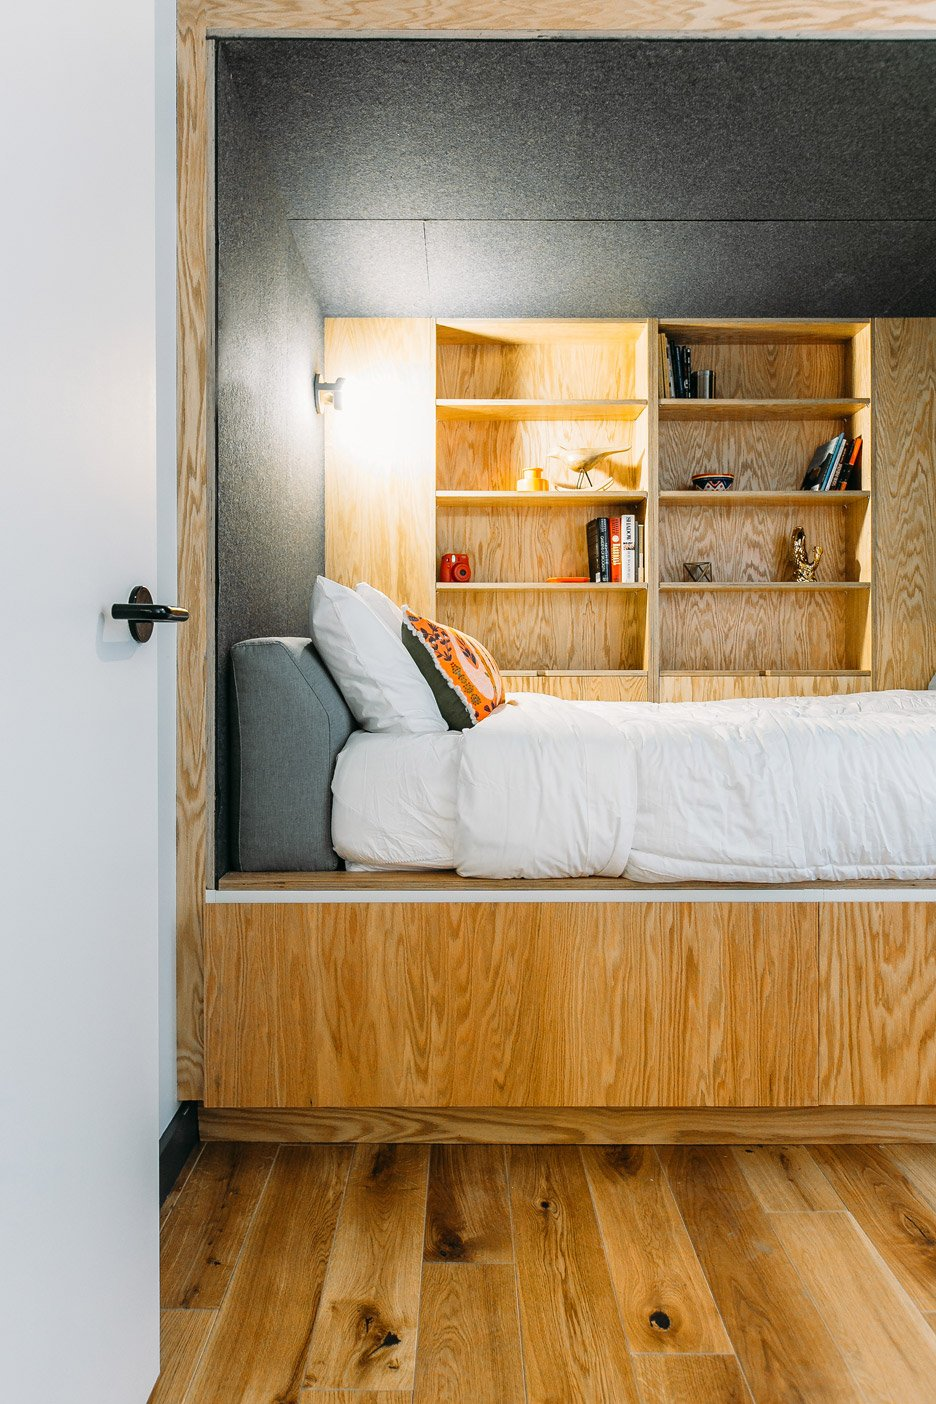 co-living-apartments-welive-new-york-city-usa_dezeen_936_6